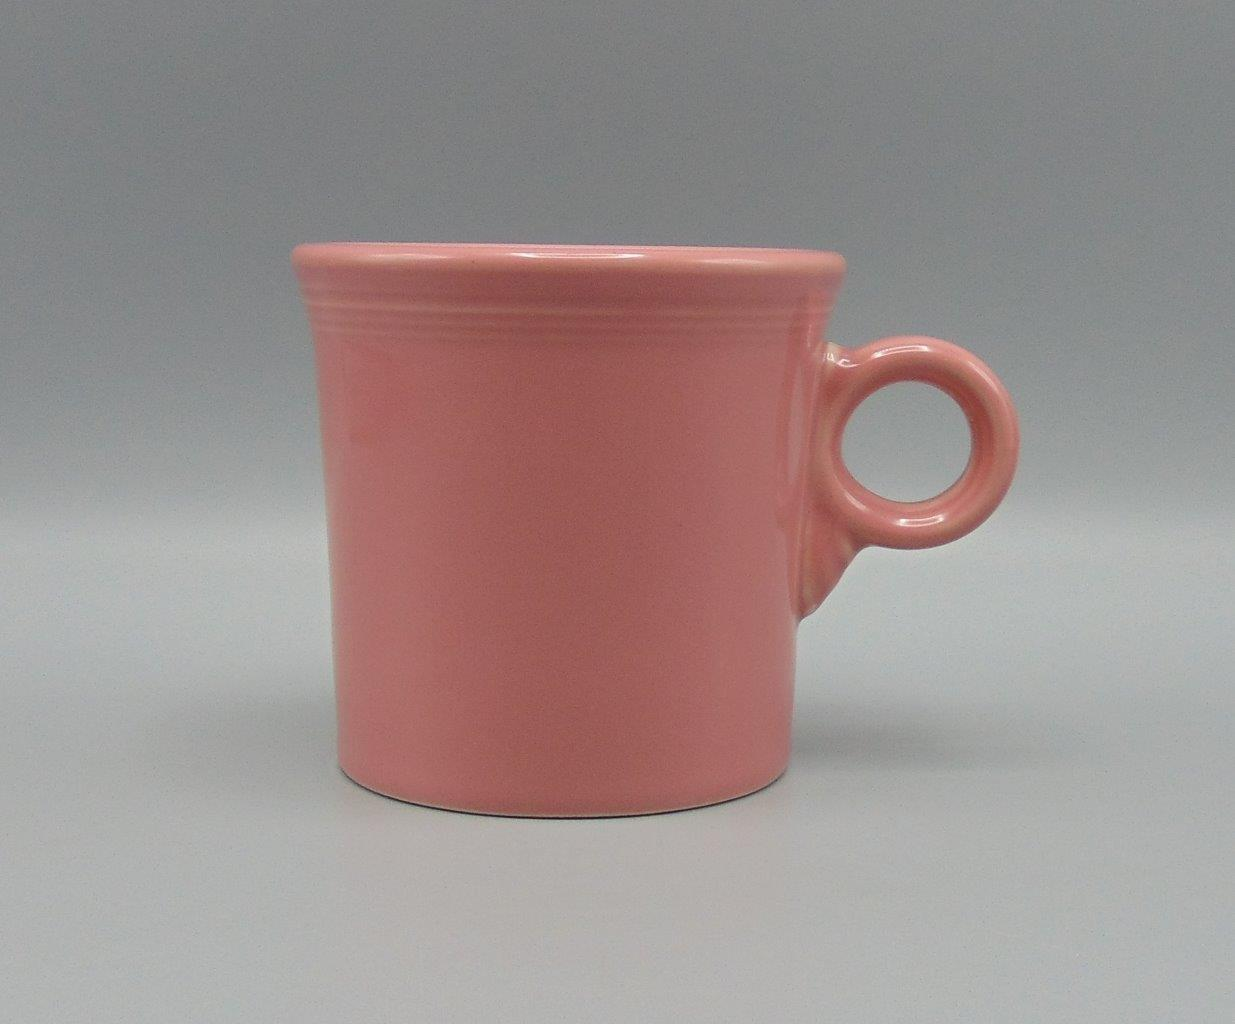 7e8ef33a174 Fiesta Fiestaware Rose Ring Handle Mug Tom and Jerry Style p86 ...